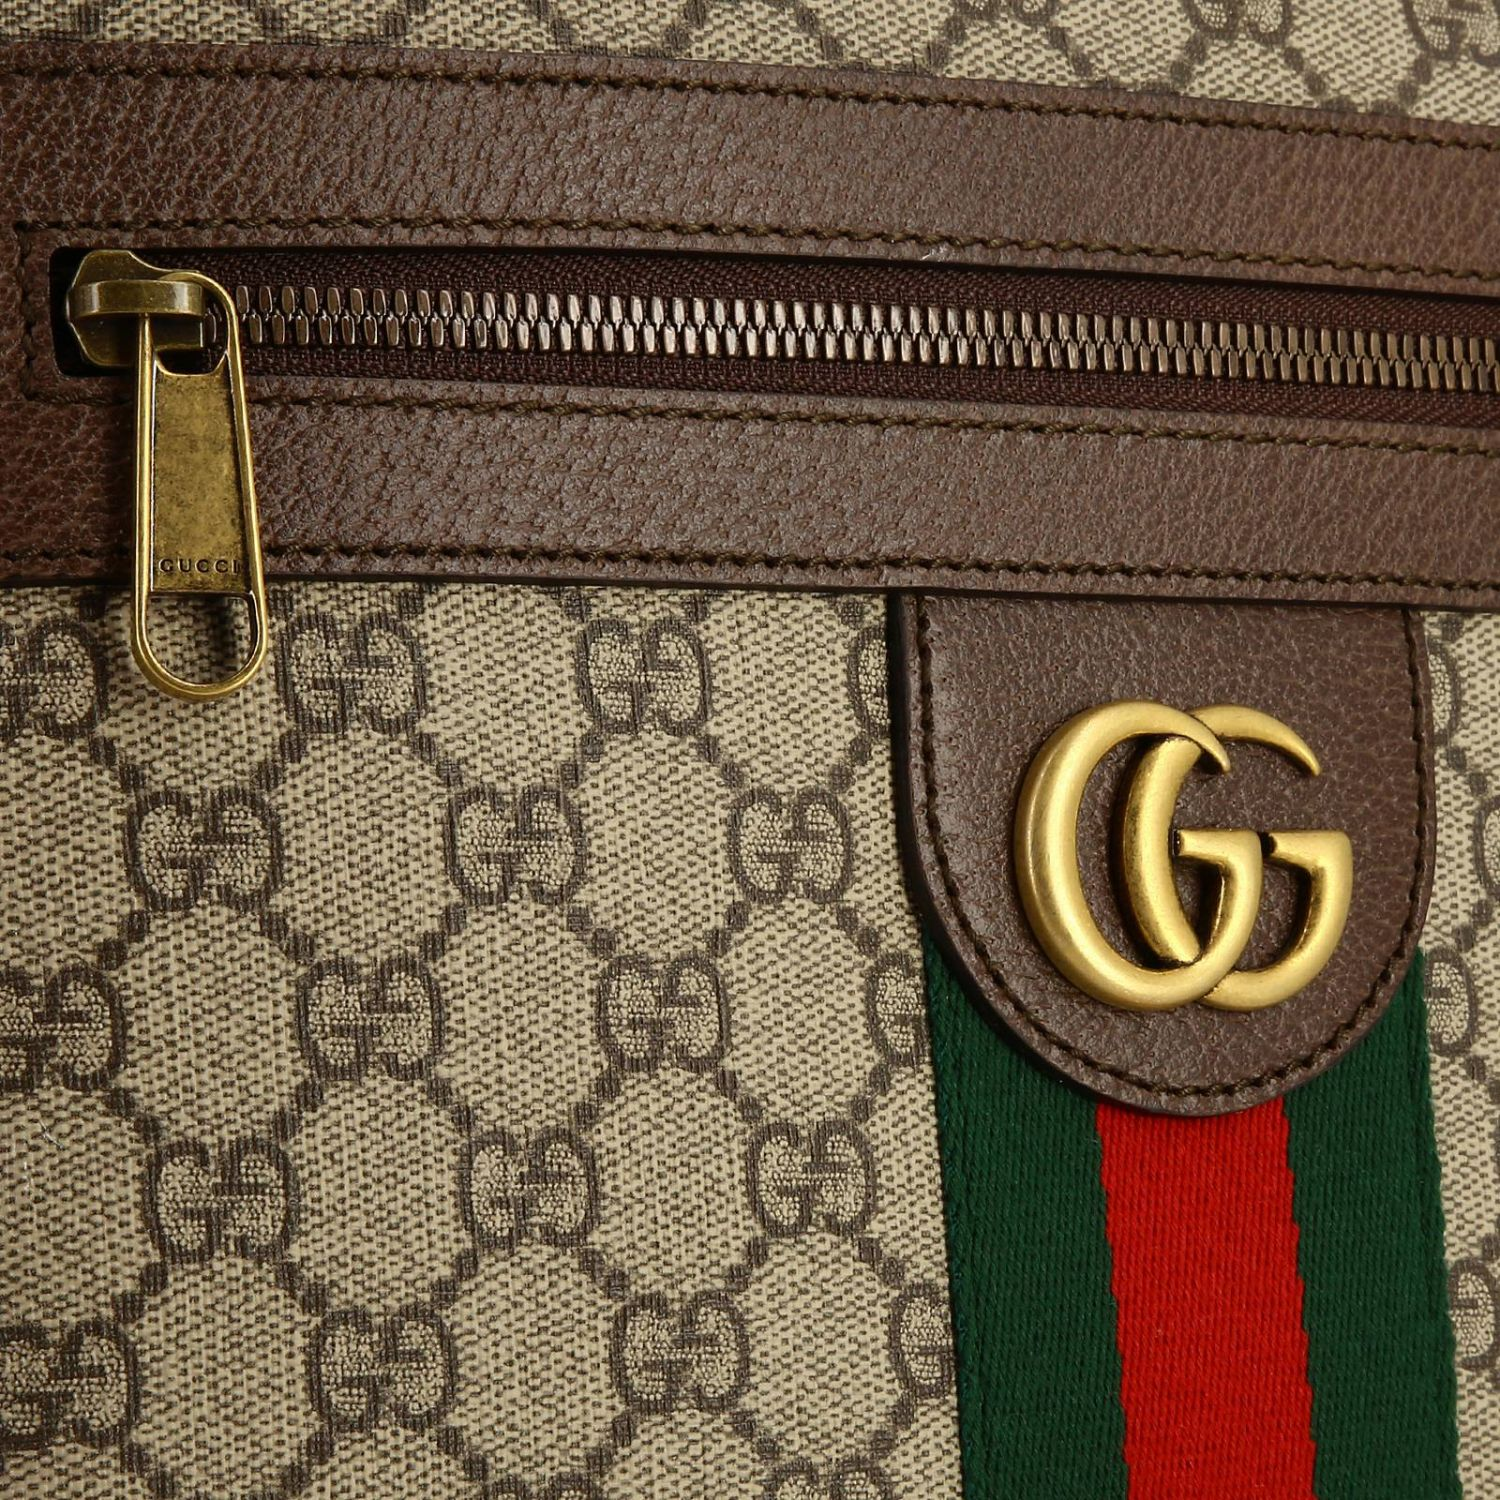 Ophidia shoulder bag in GG Supreme Gucci leather with Web band beige 4